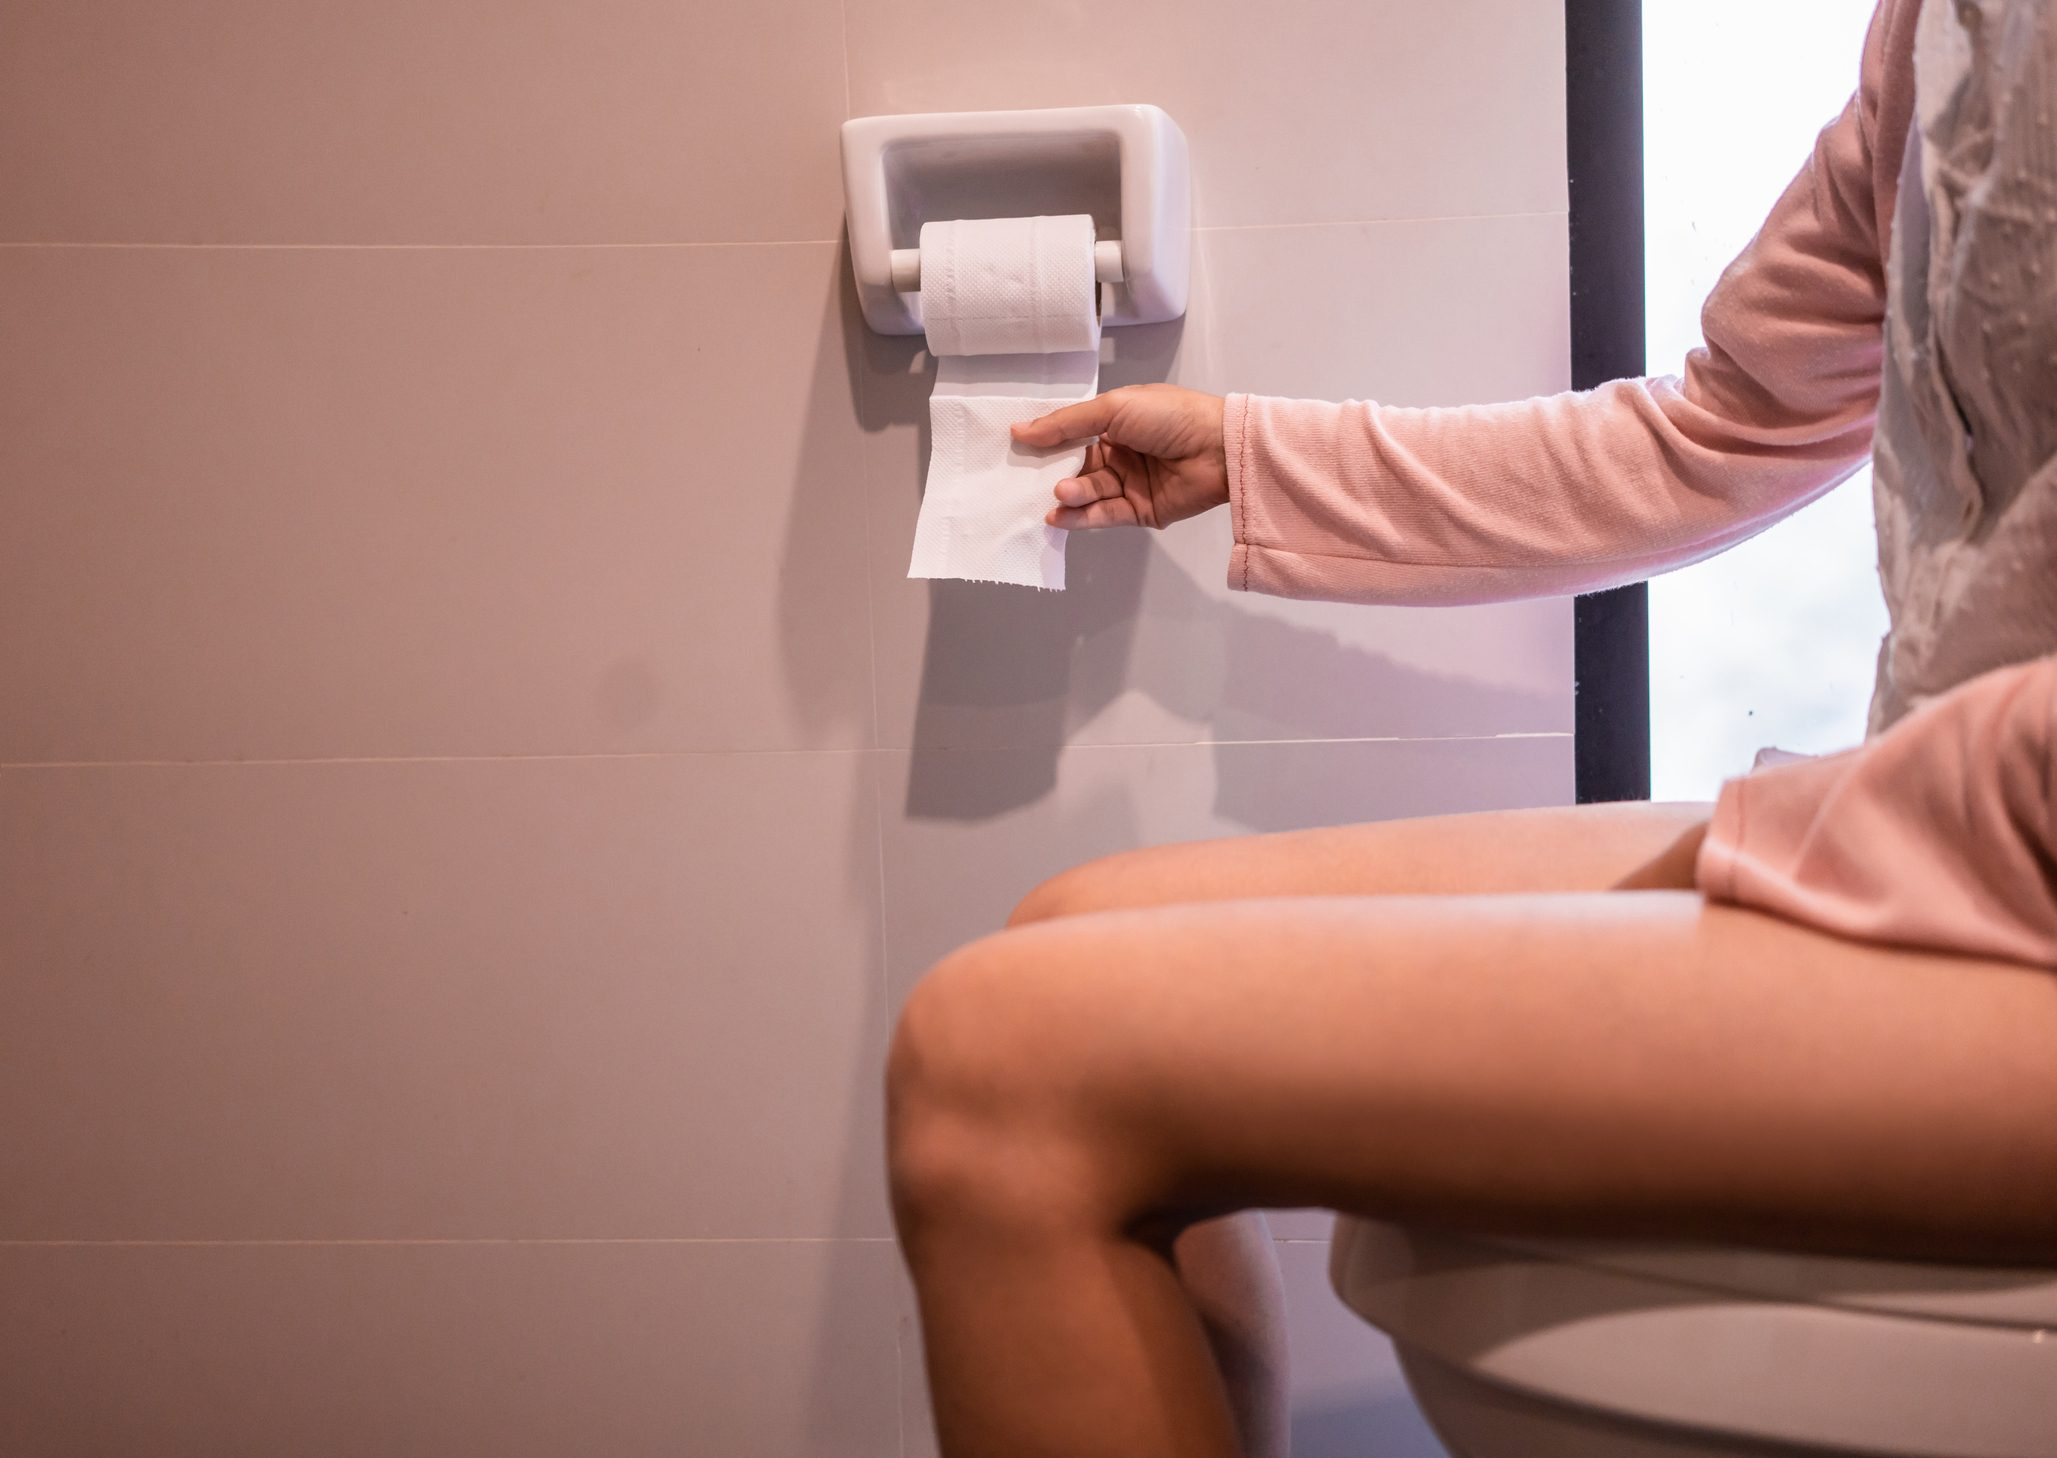 woman sitting on toilet grabbing toilet paper